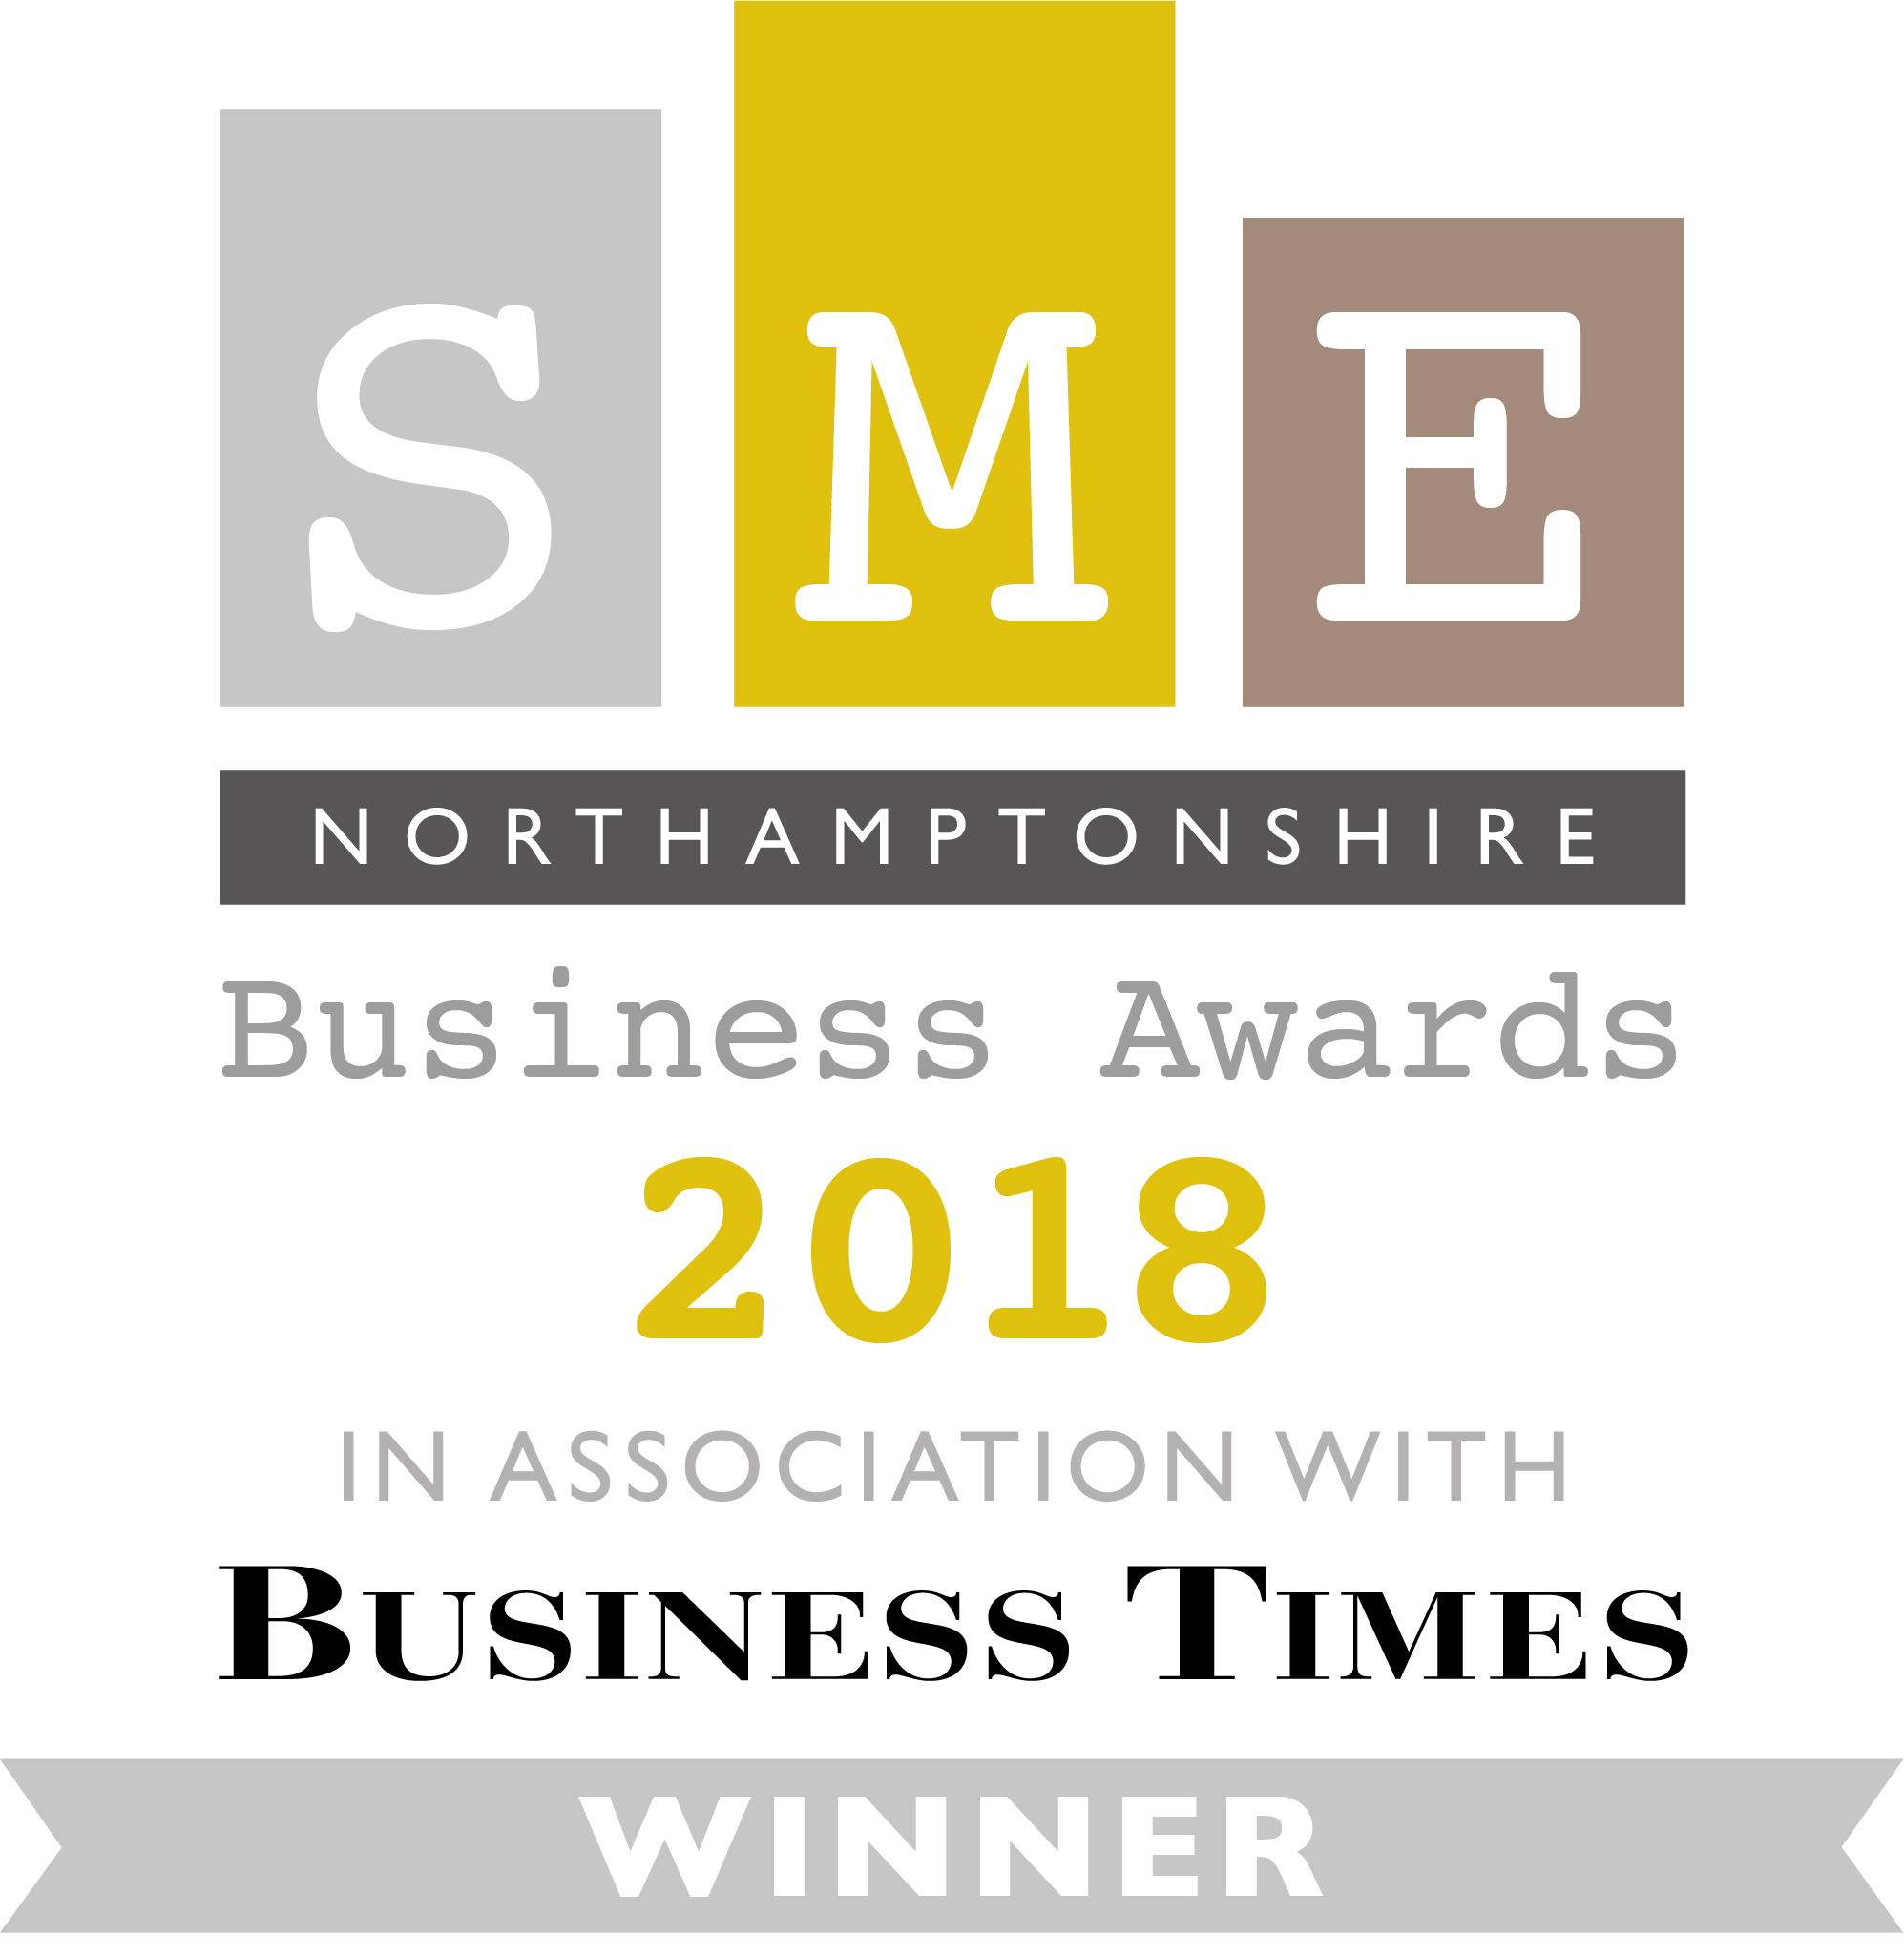 SME Northamptonshire Business Awards Winner 2018